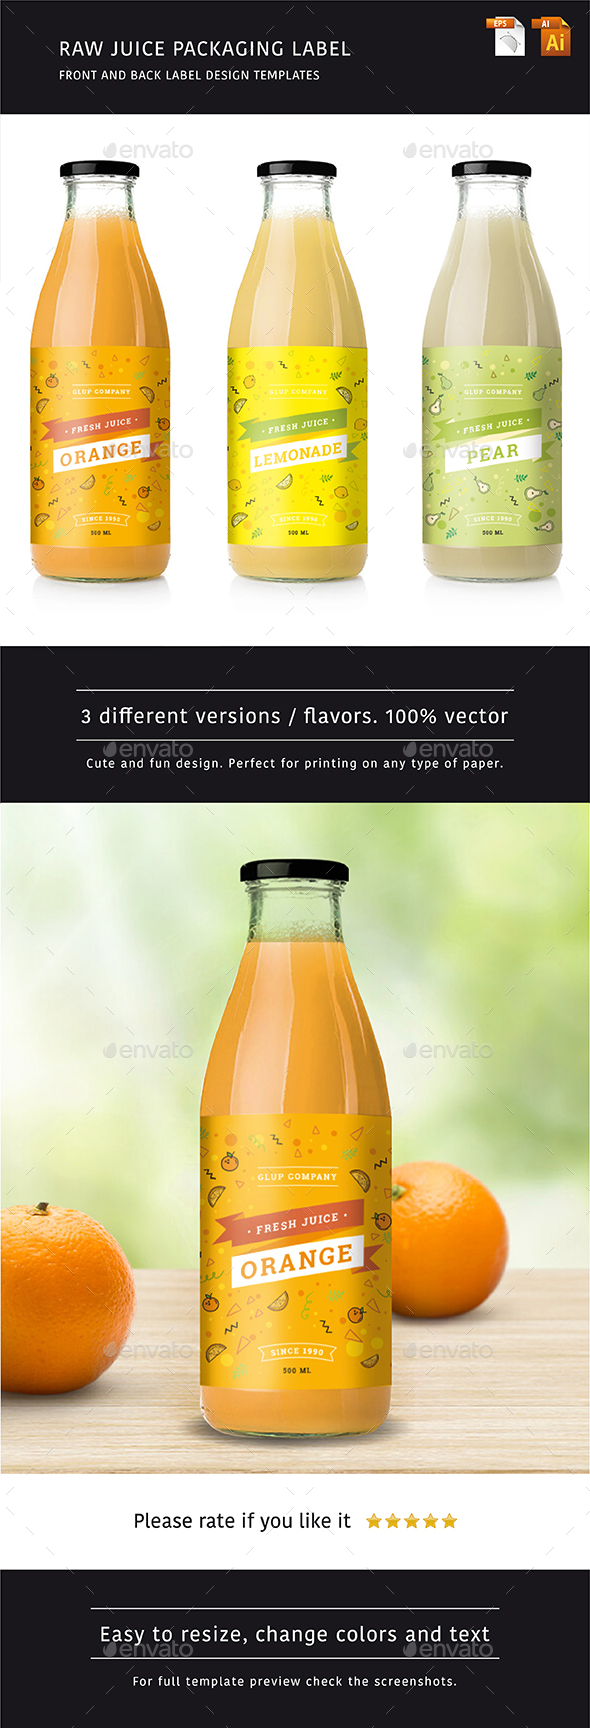 Raw Juice Label - 3 Flavors - Packaging Print Templates